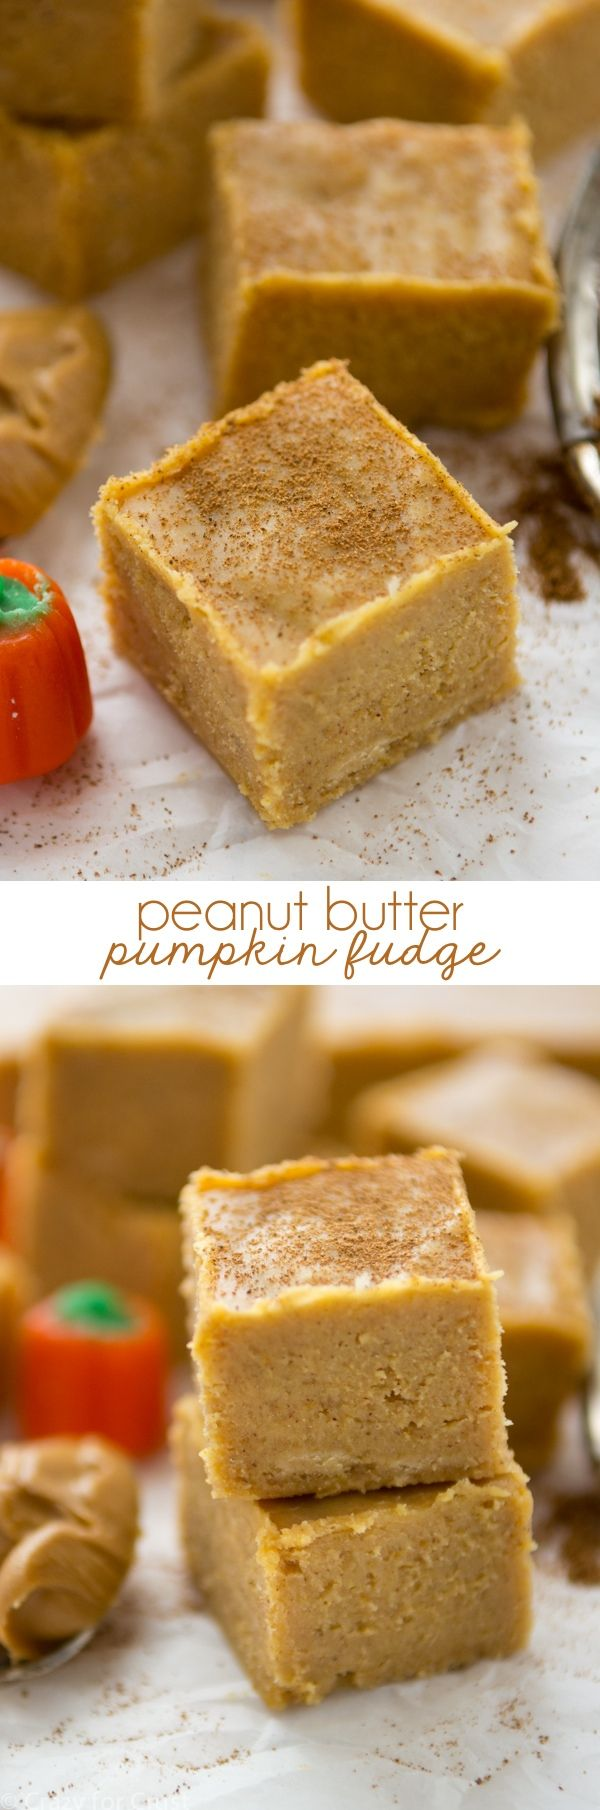 Easy No-Fail Peanut Butter Pumpkin Fudge has only 5 ingredients and is the perfect fudge for the holidays!